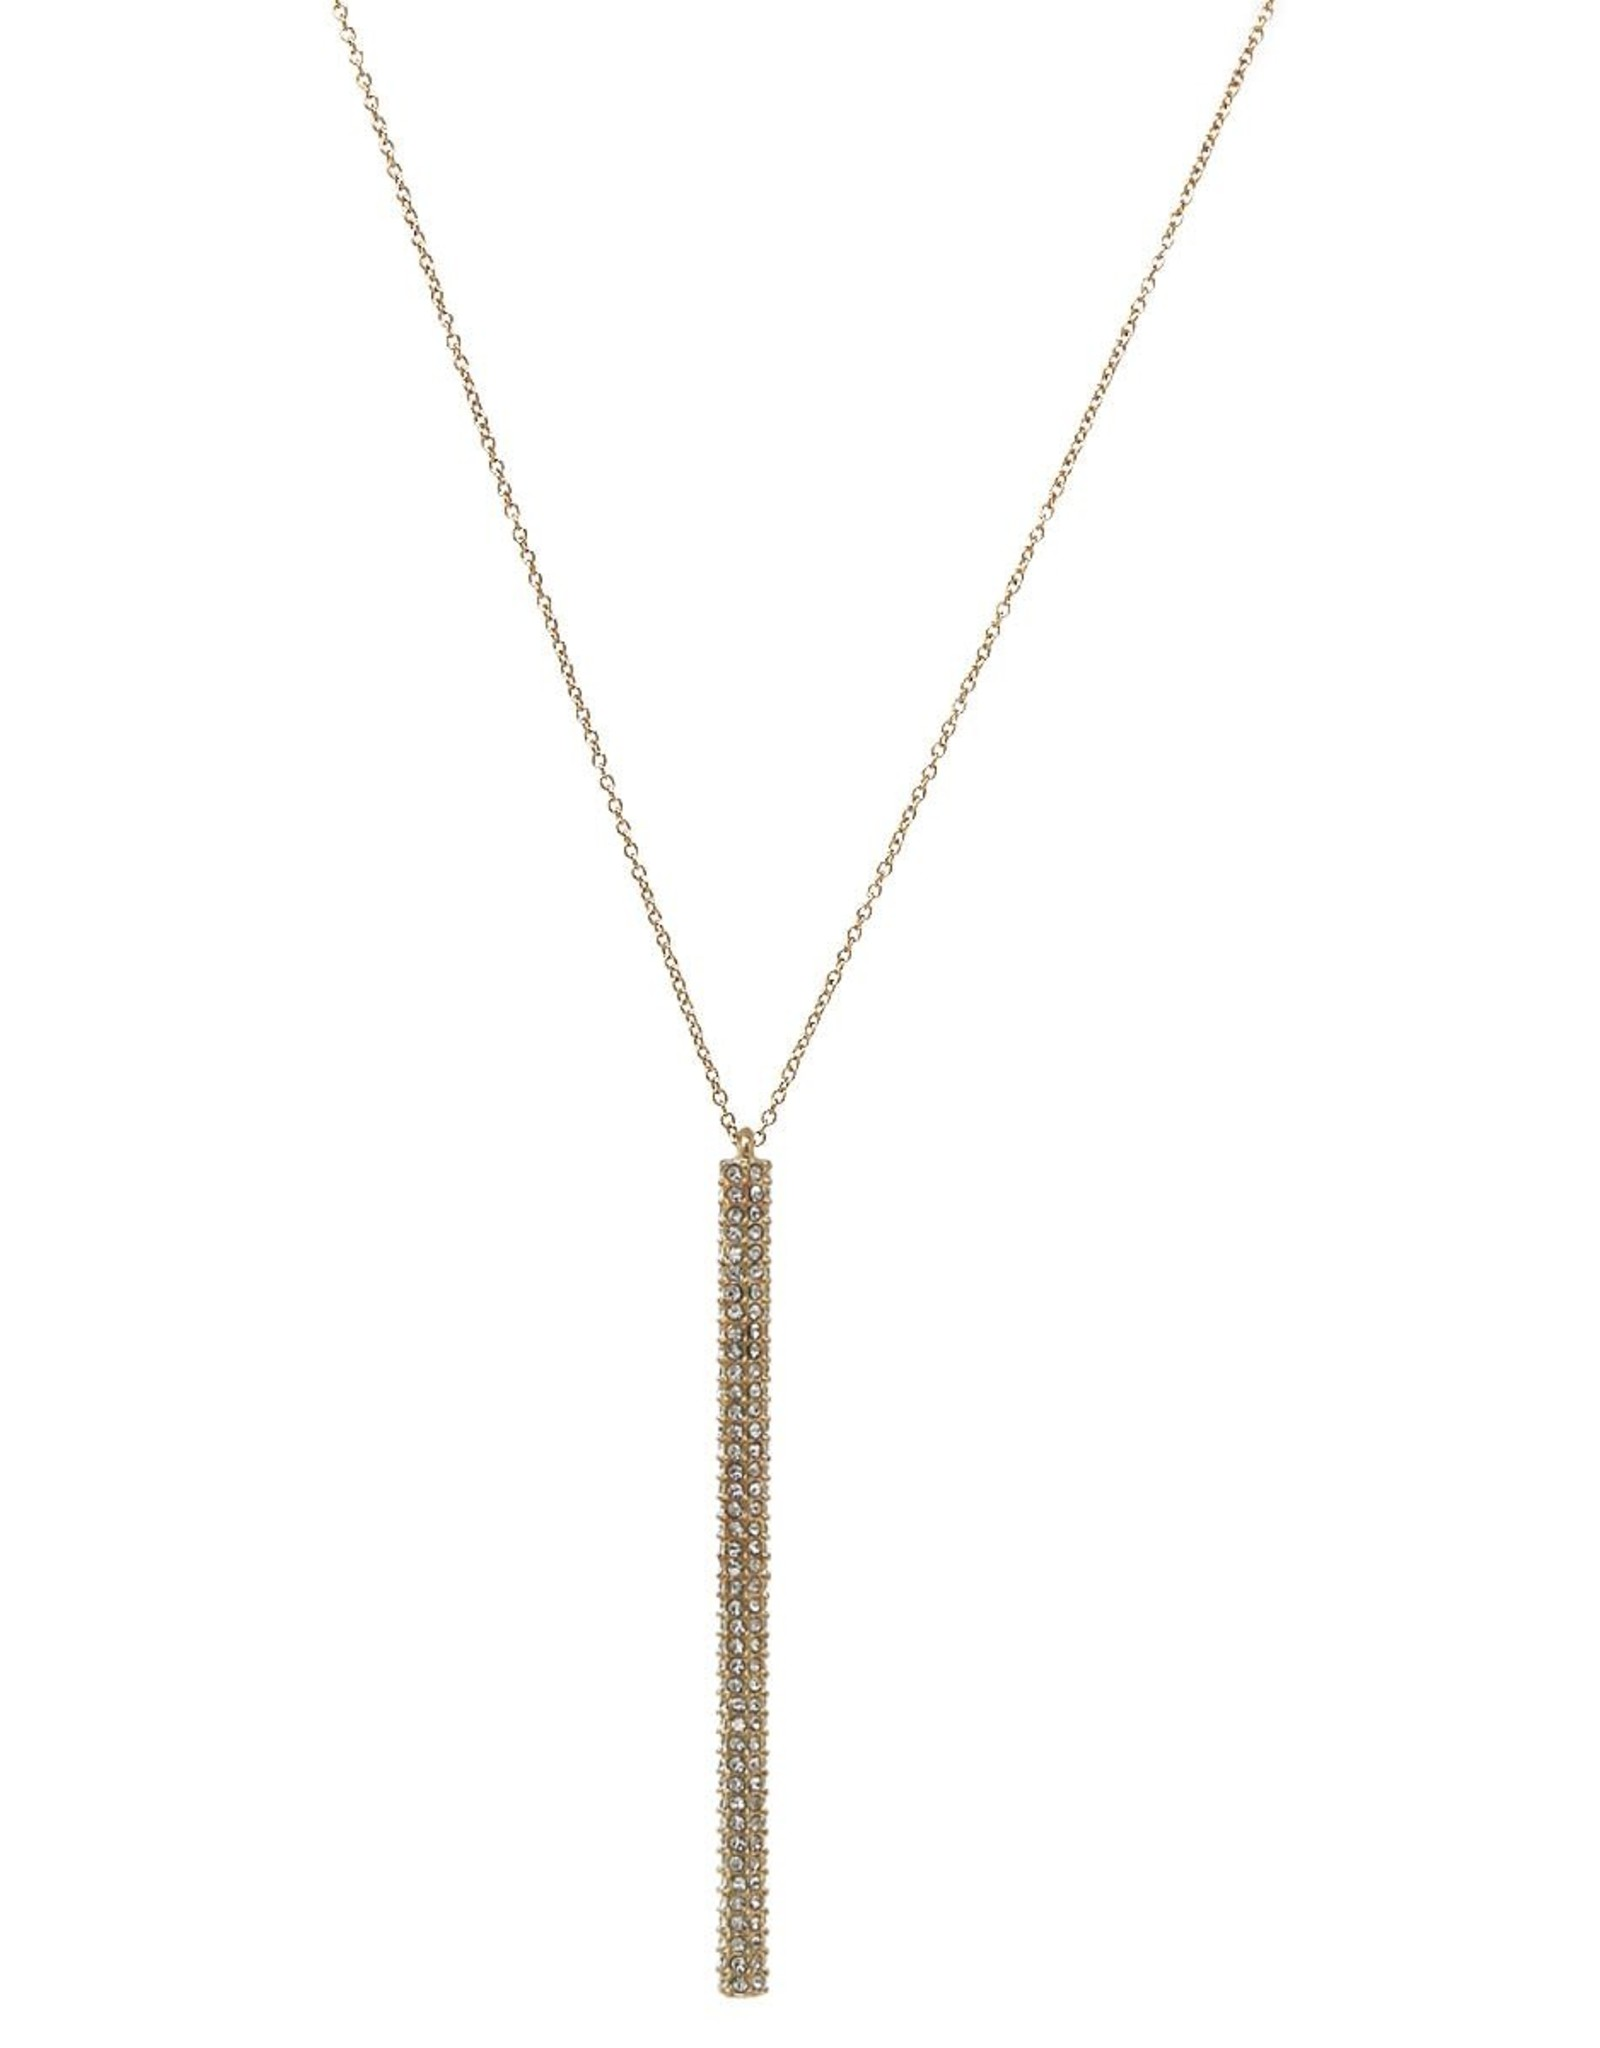 Rhinestone Pave Bar Pendant Long Necklace - Gold/Clear